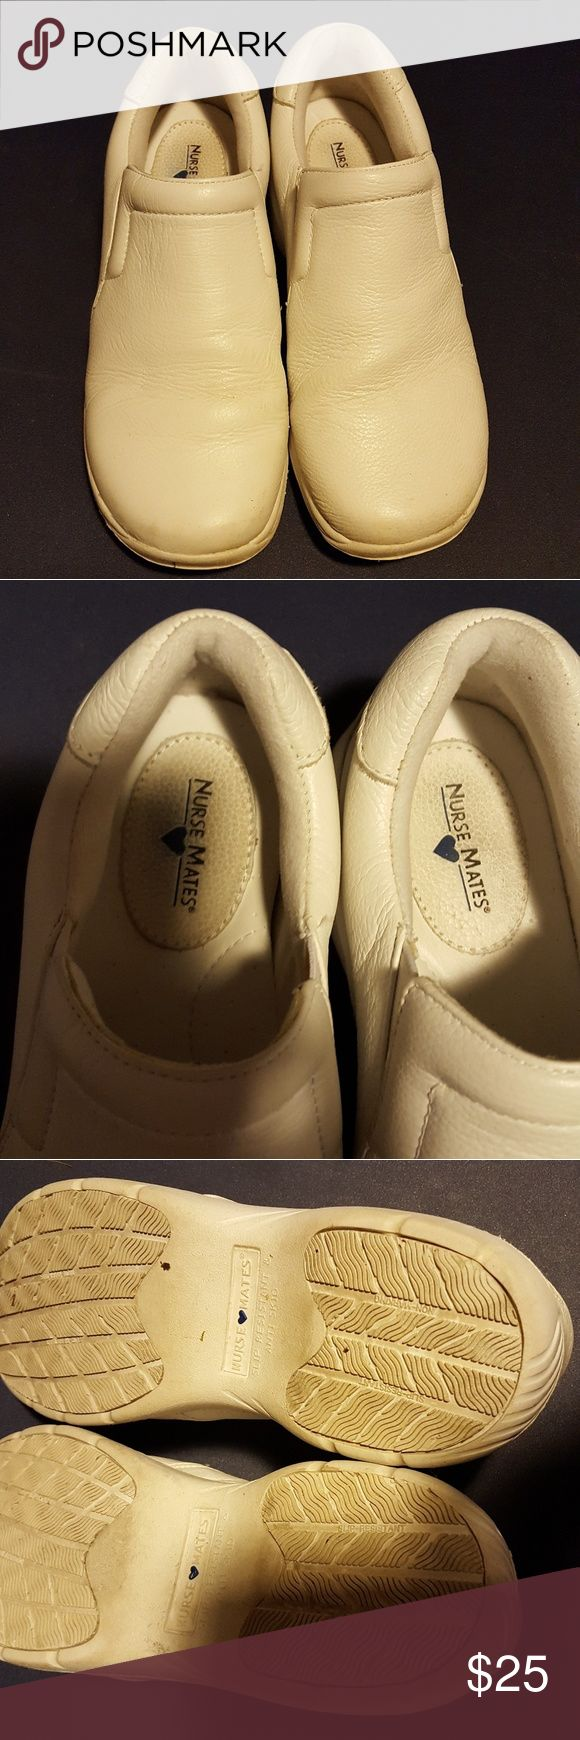 Nurse mate shoes White shoes in wide width great for being on your feet all day nurse mates Shoes Flats & Loafers